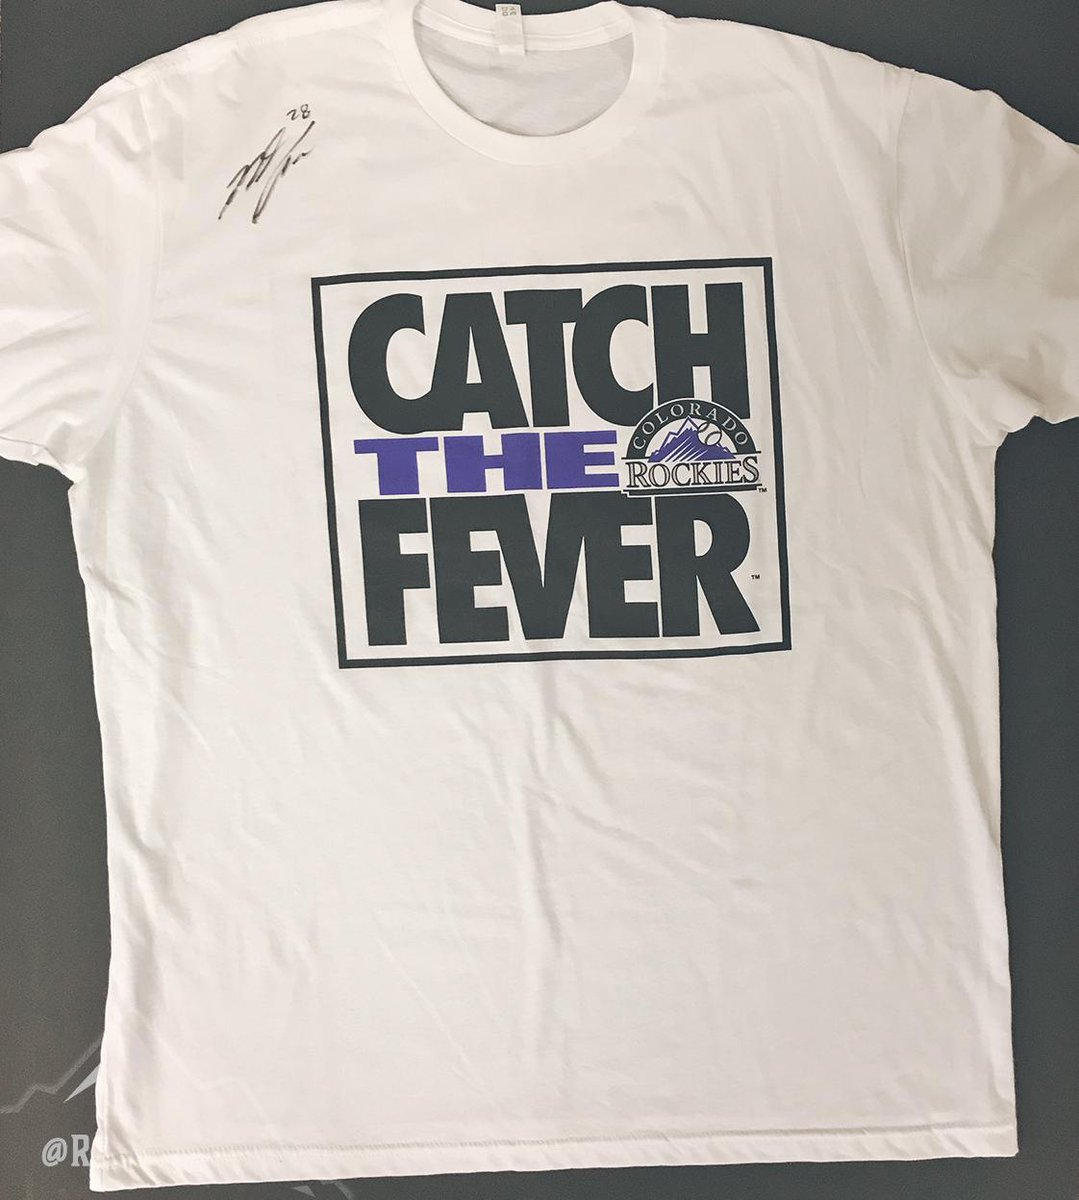 "Tonight is 90's Night at the ball yard!  The epic ""Catch the Fever"" tees are all sold out, but we smuggled one for you…and asked our friend Nolan Arenado to sign it.  RETWEET NOW for your chance to win this Nolan-signed T-shirt!"